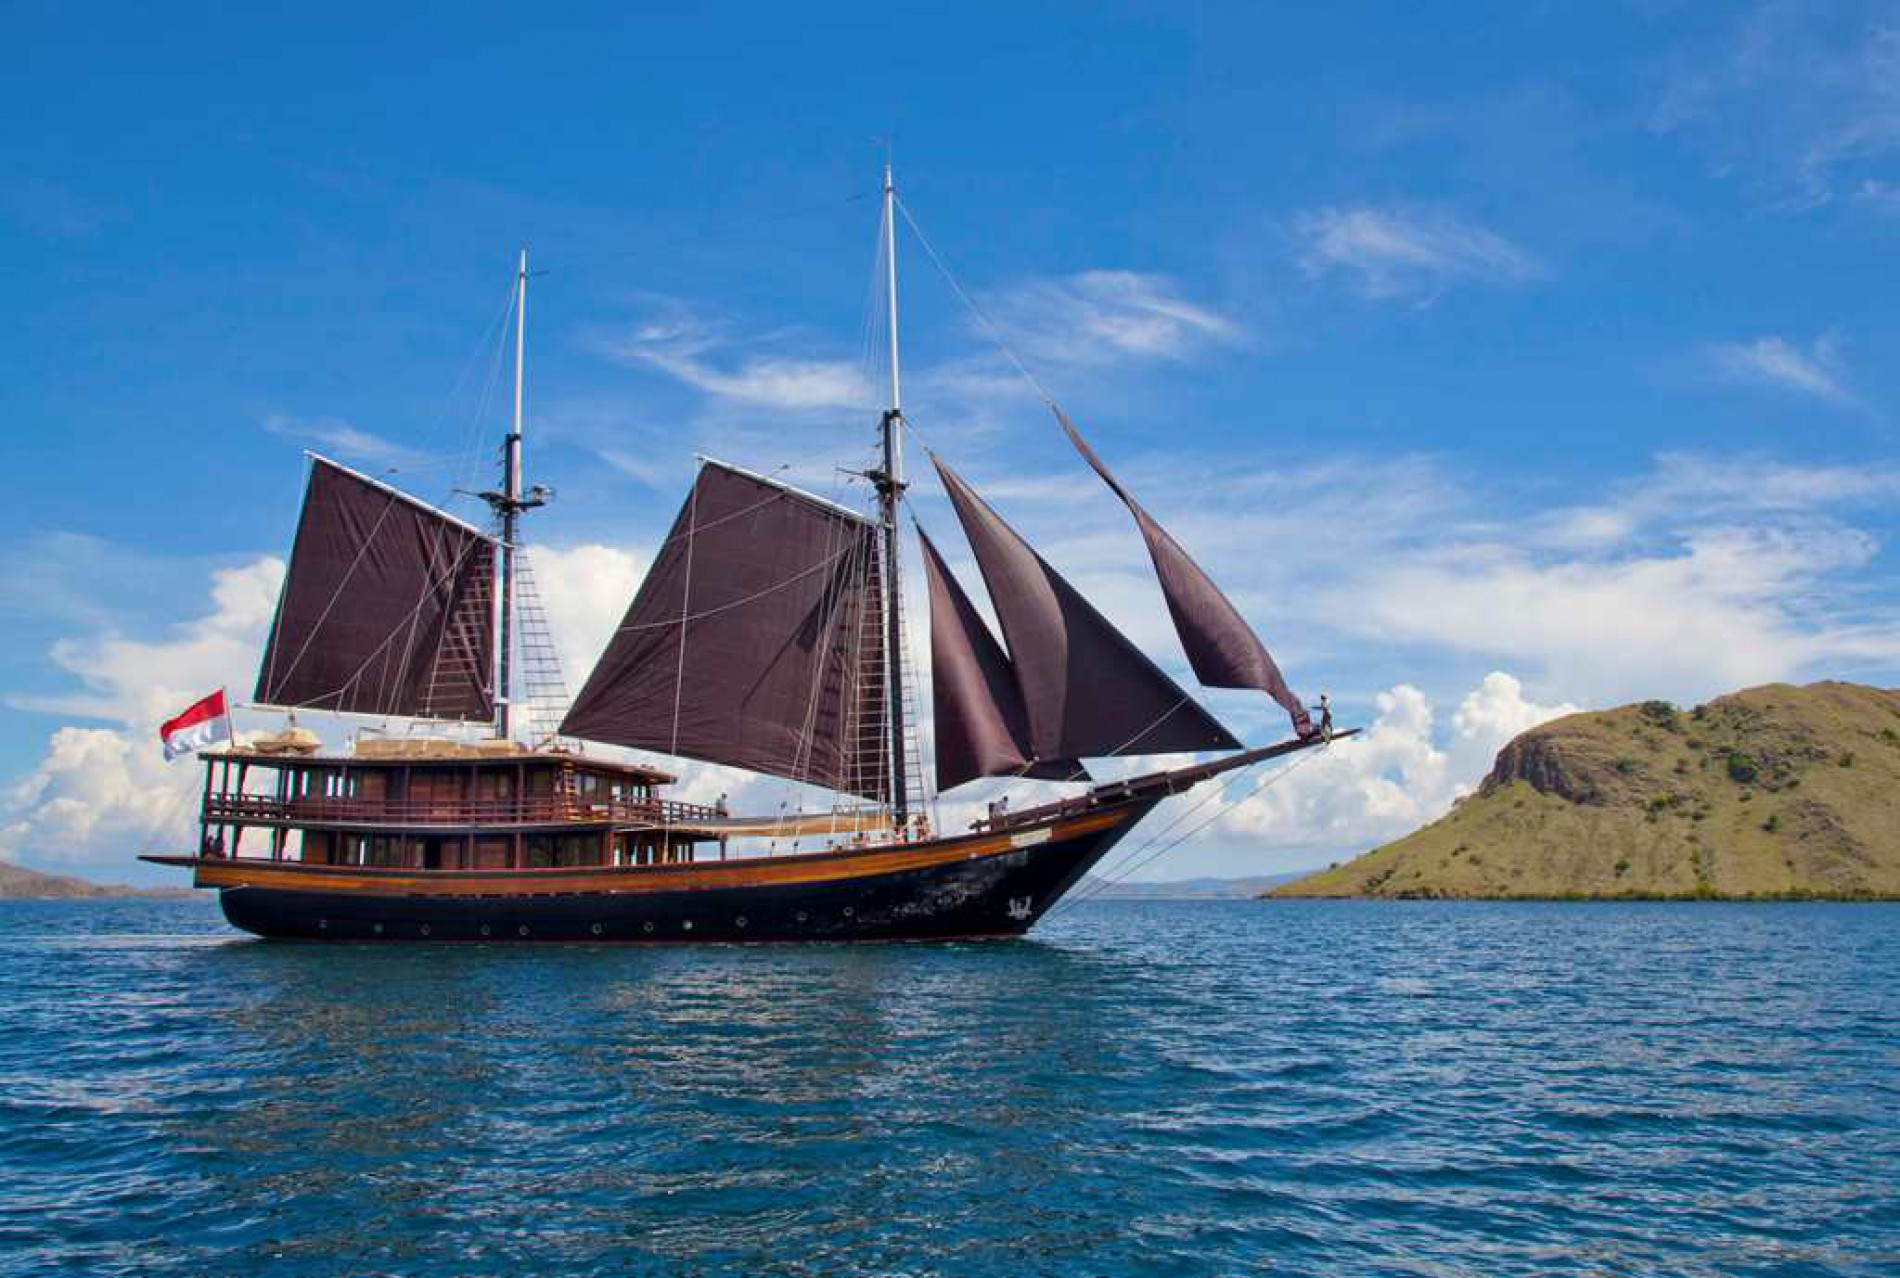 S/Y DUNIA BARU yacht for charter